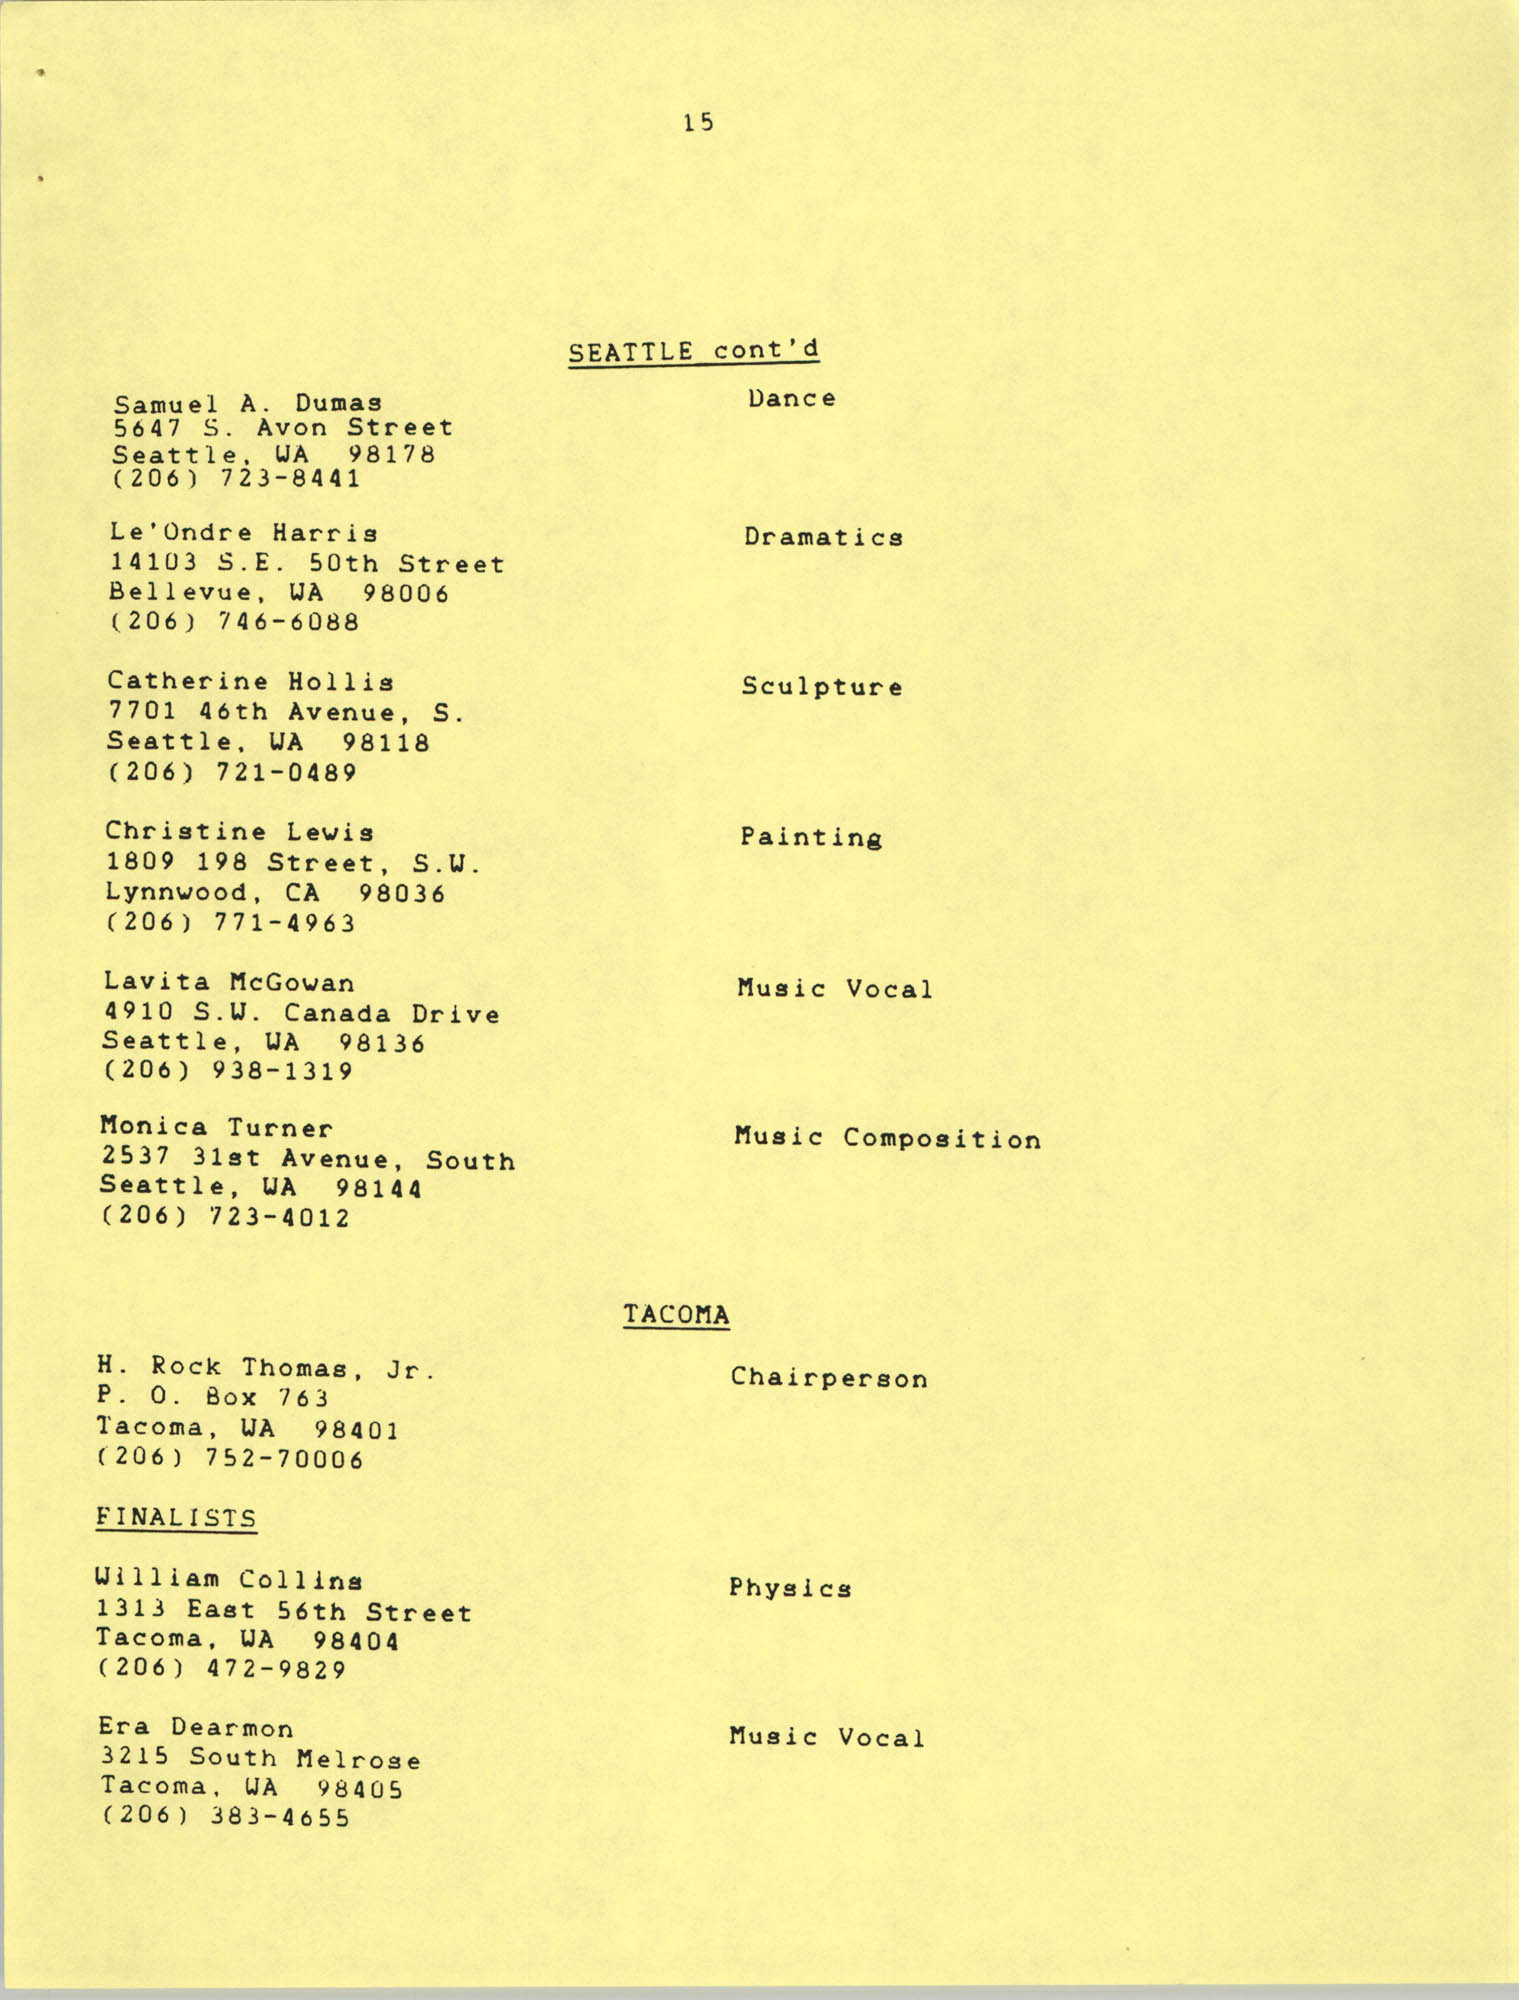 1987 Act-So Contestants, NAACP West Coast Region, Page 15